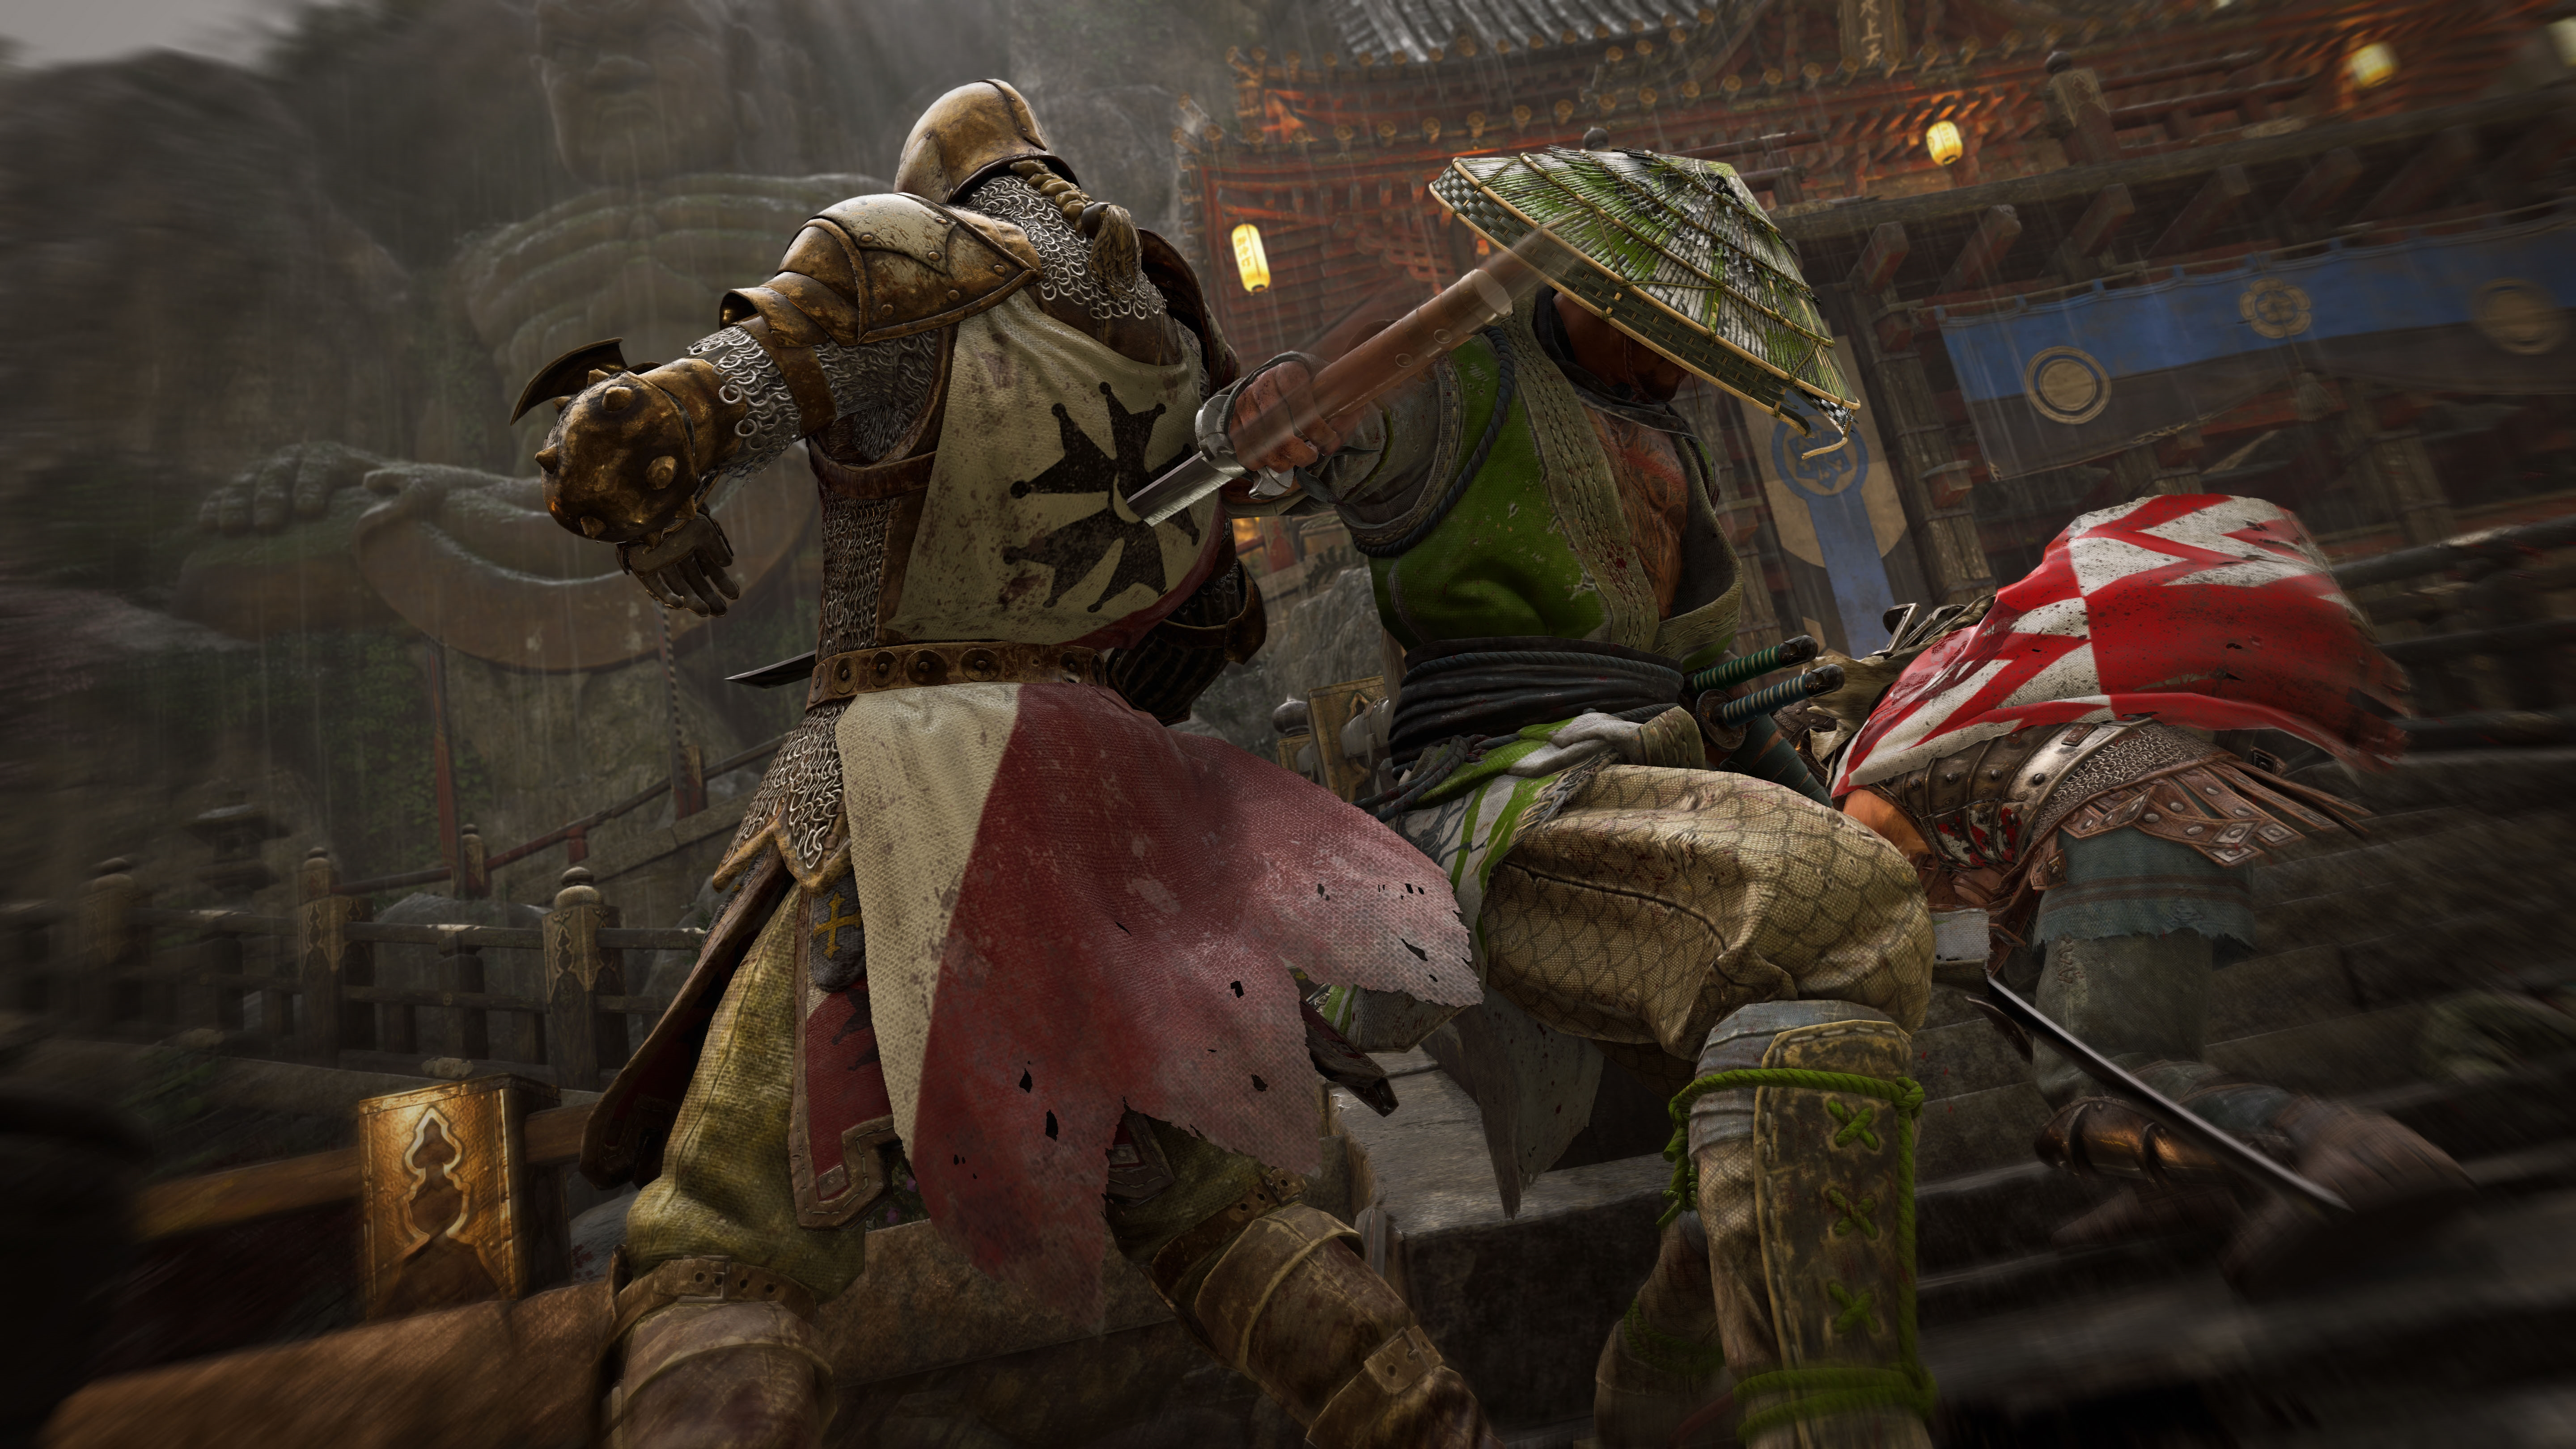 For Honor – Season 4 Order  and  Havoc Brings New Tribute Mode, Two New Heroes | DeviceDaily.com